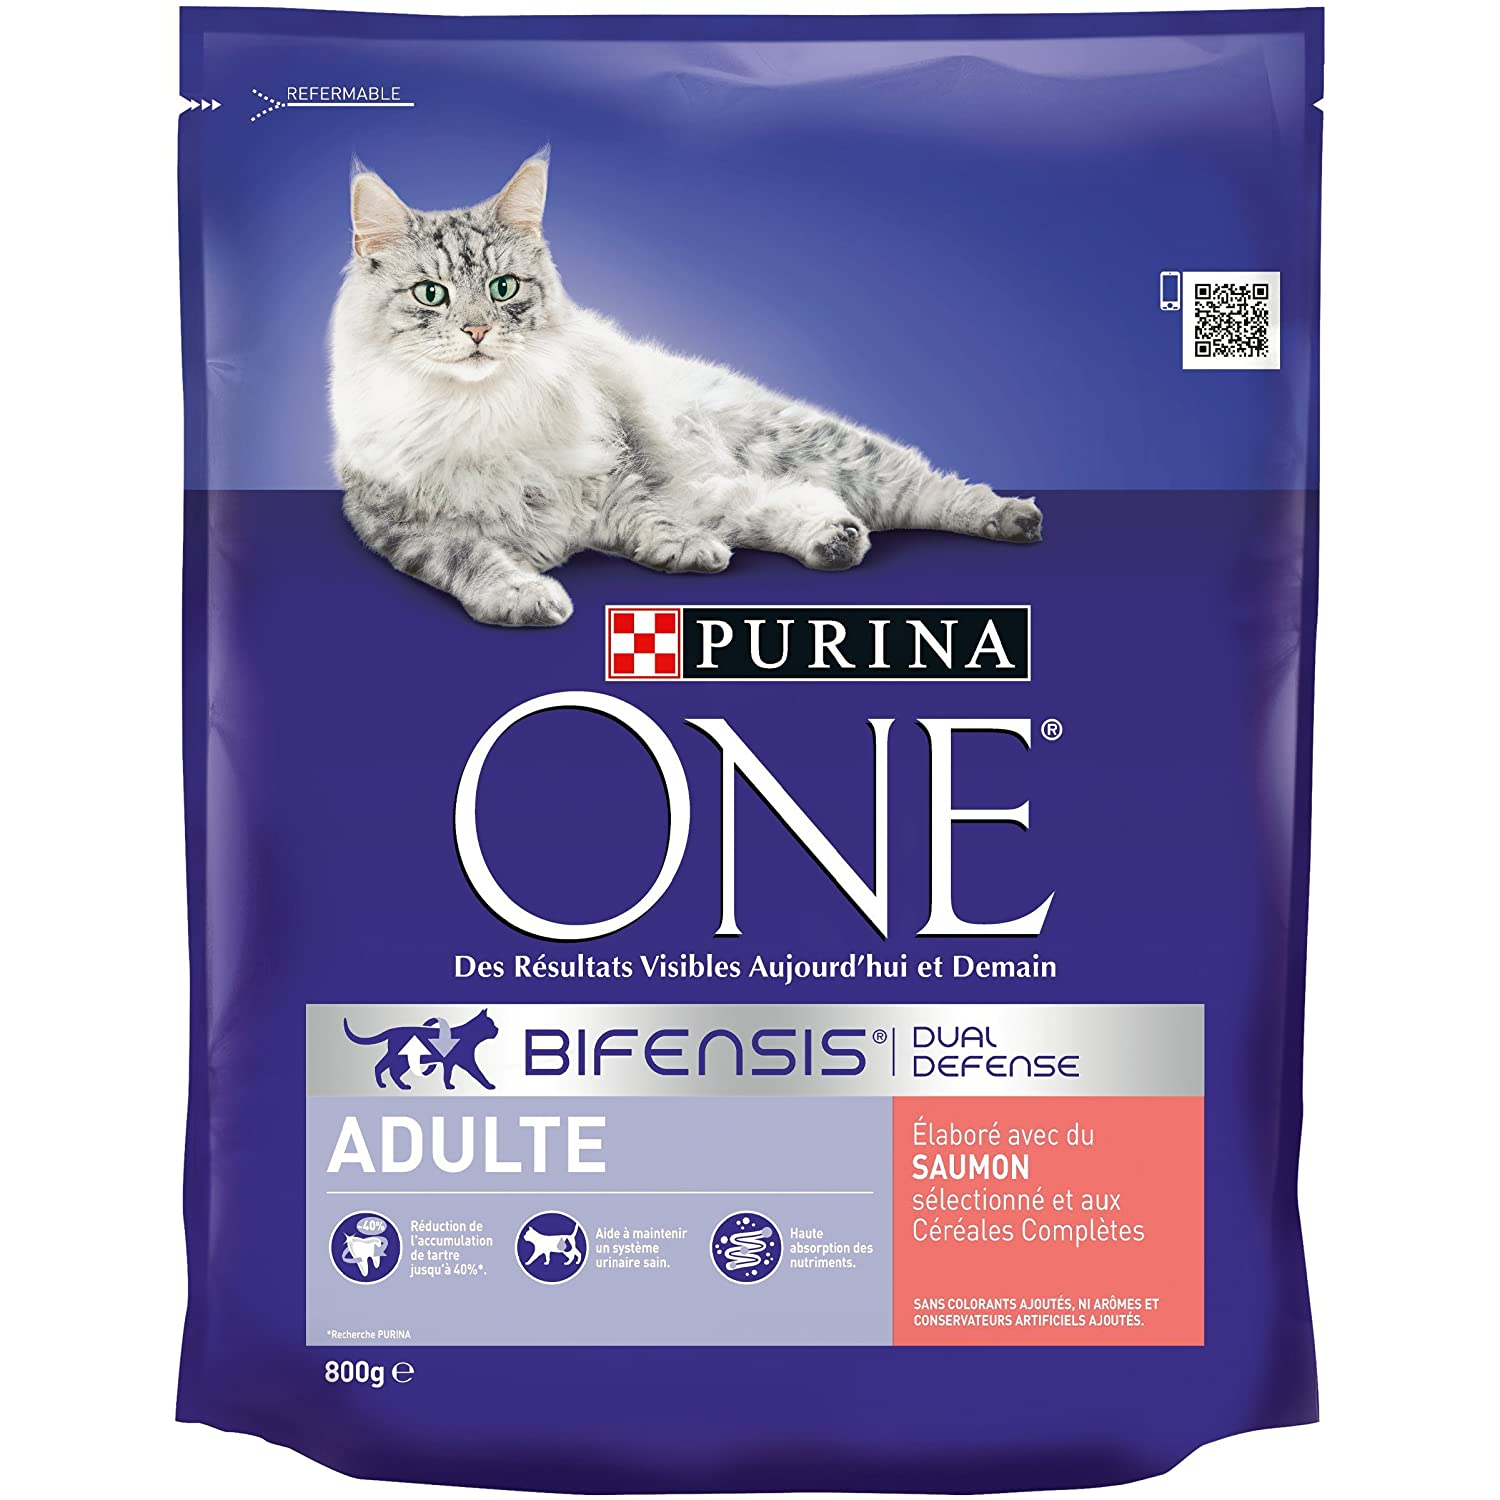 Purina One Light - au Poulet et au Blé - 1, 5kg - Croquettes pour Chat Adulte - Lot de 6 One Chat 558064